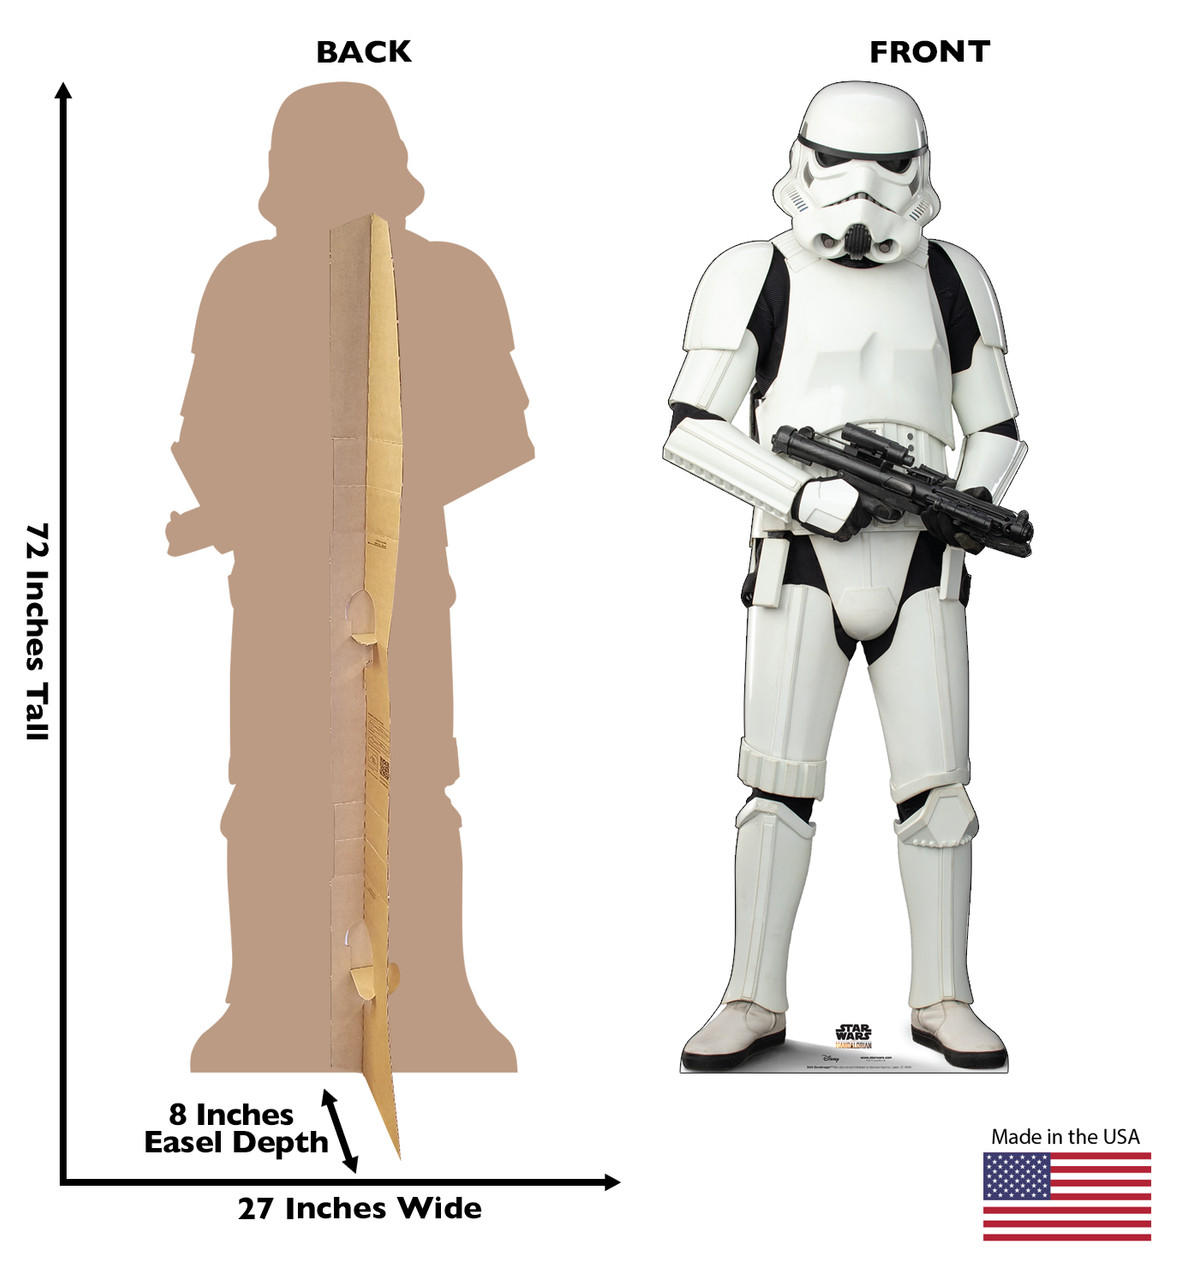 Life-size cardboard standee of a Stormtrooper with back and front dimensions.